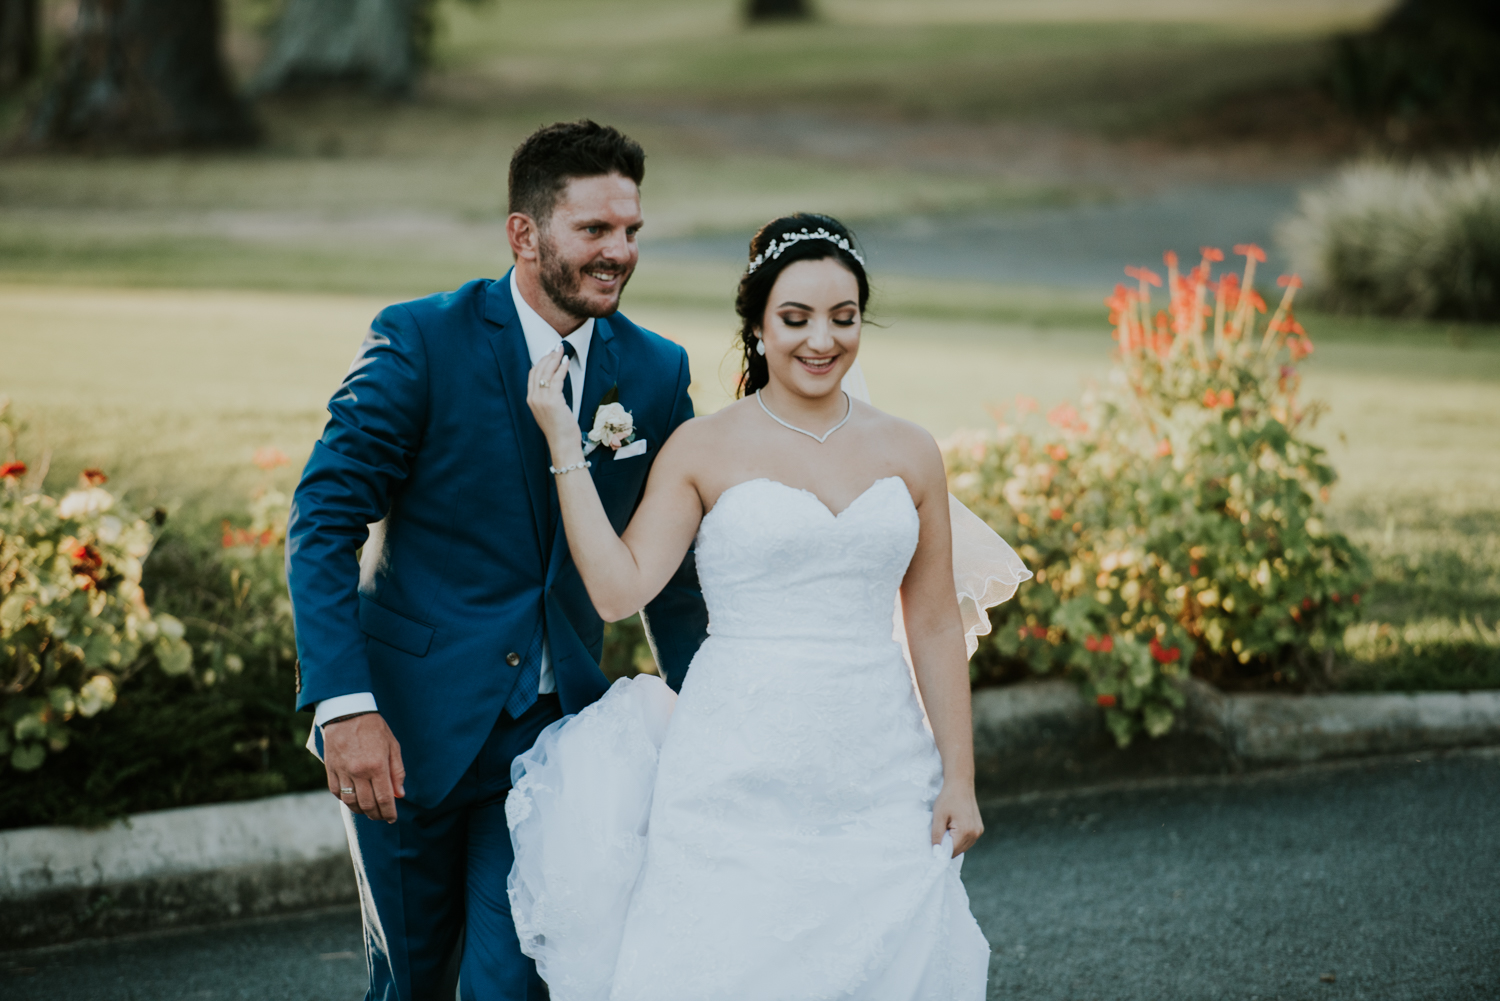 Brisbane Wedding | Wynnum Golf Course-77.jpg